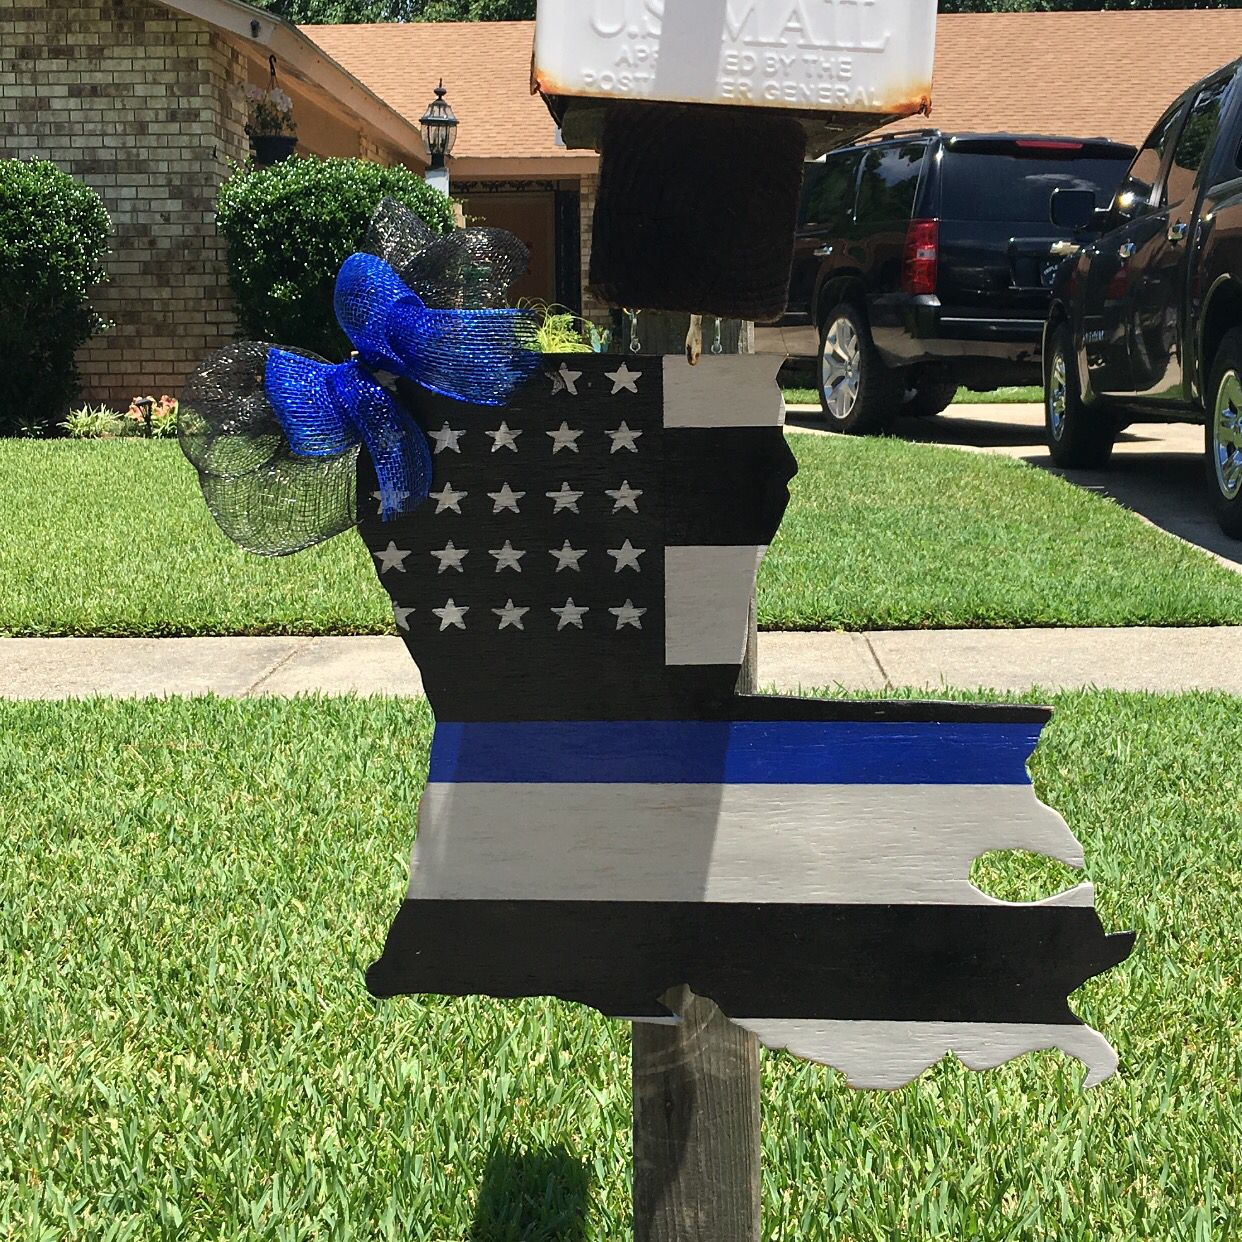 Louisiana Police Door Hanger Or Mailbox Decoration We Support Police Officers Thin Blue Line Police Door Hanger Mailbox Decor Door Hanger Template